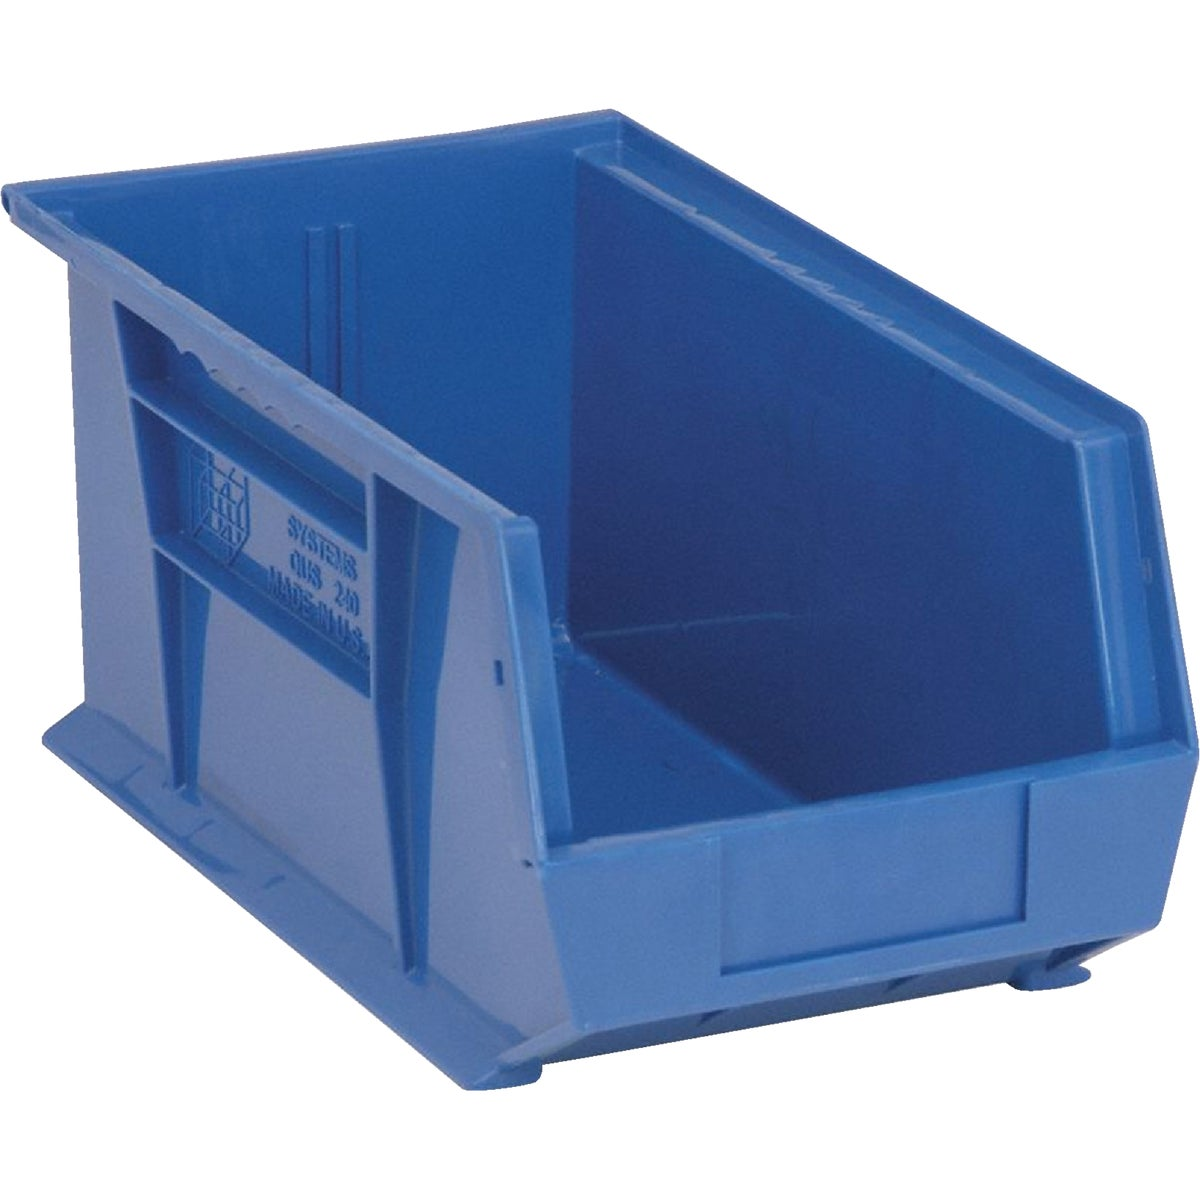 LARGE BLUE BIN - BIN-14 by Stack On Products